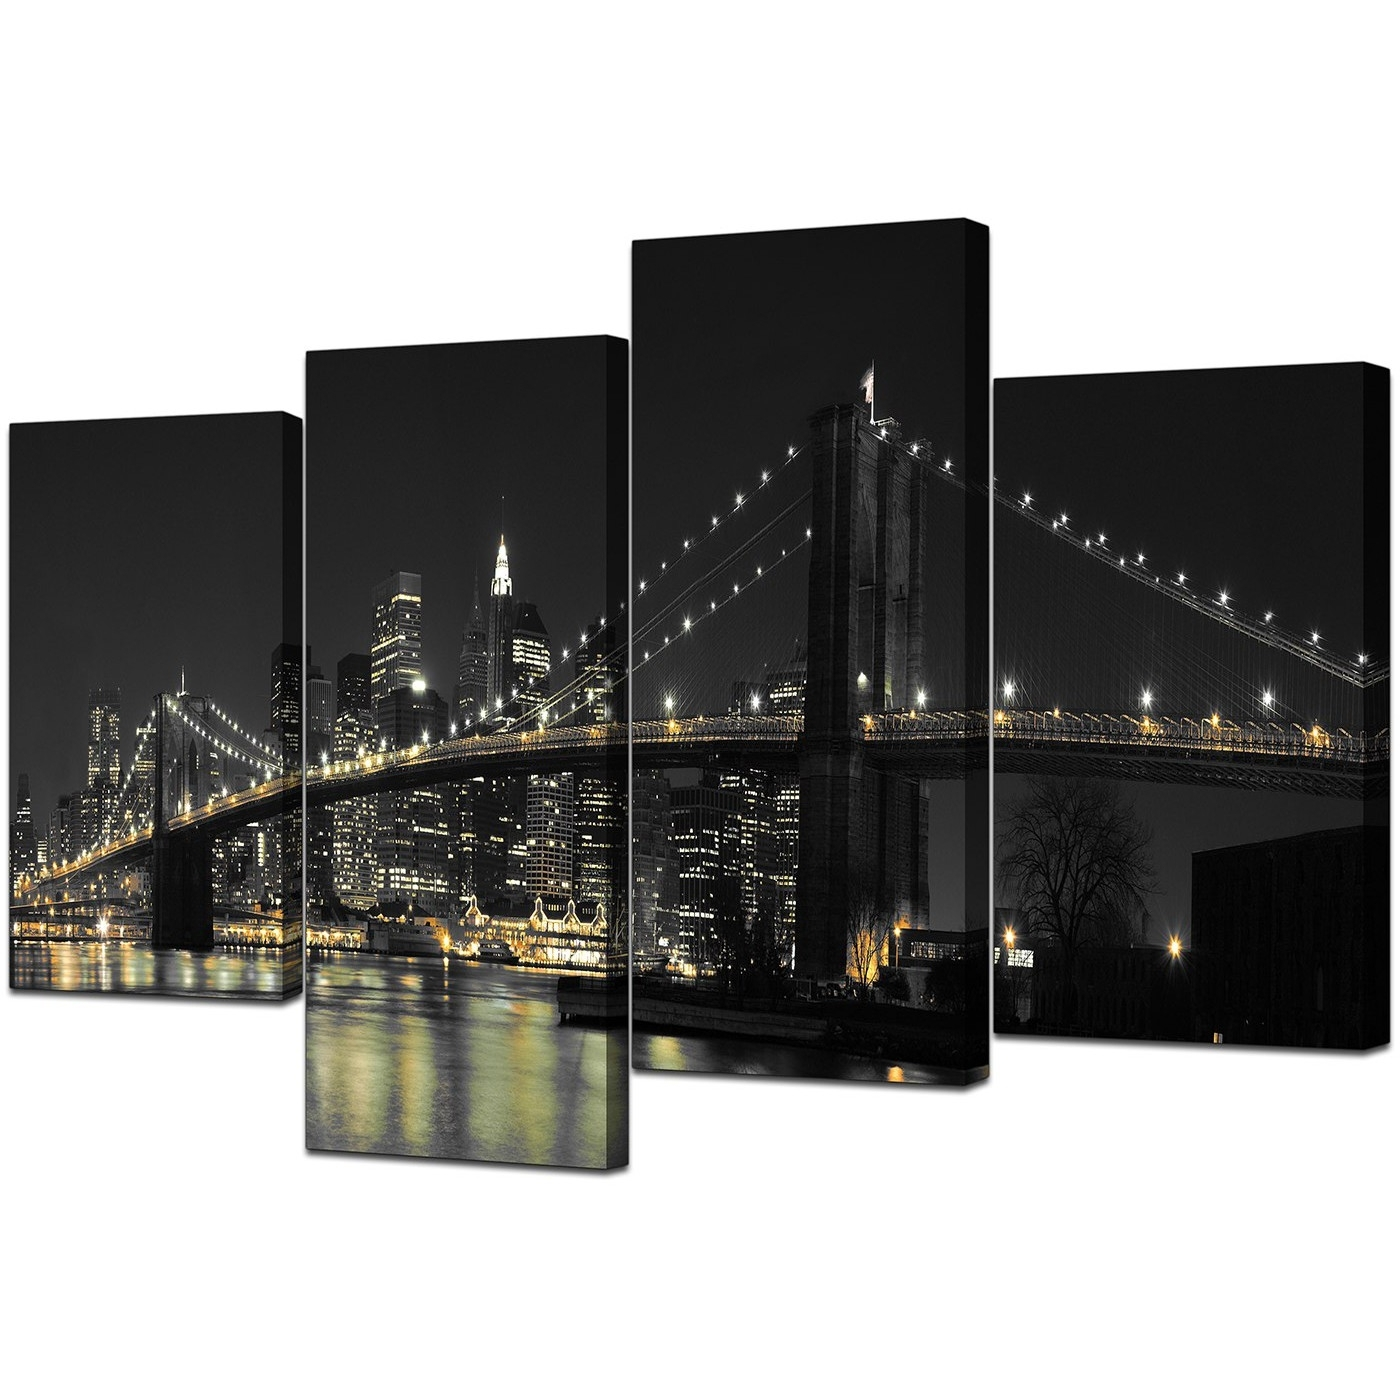 New York Wall Art Regarding 2017 Canvas Wall Art Of New York For Your Office – 4 Part (View 10 of 15)